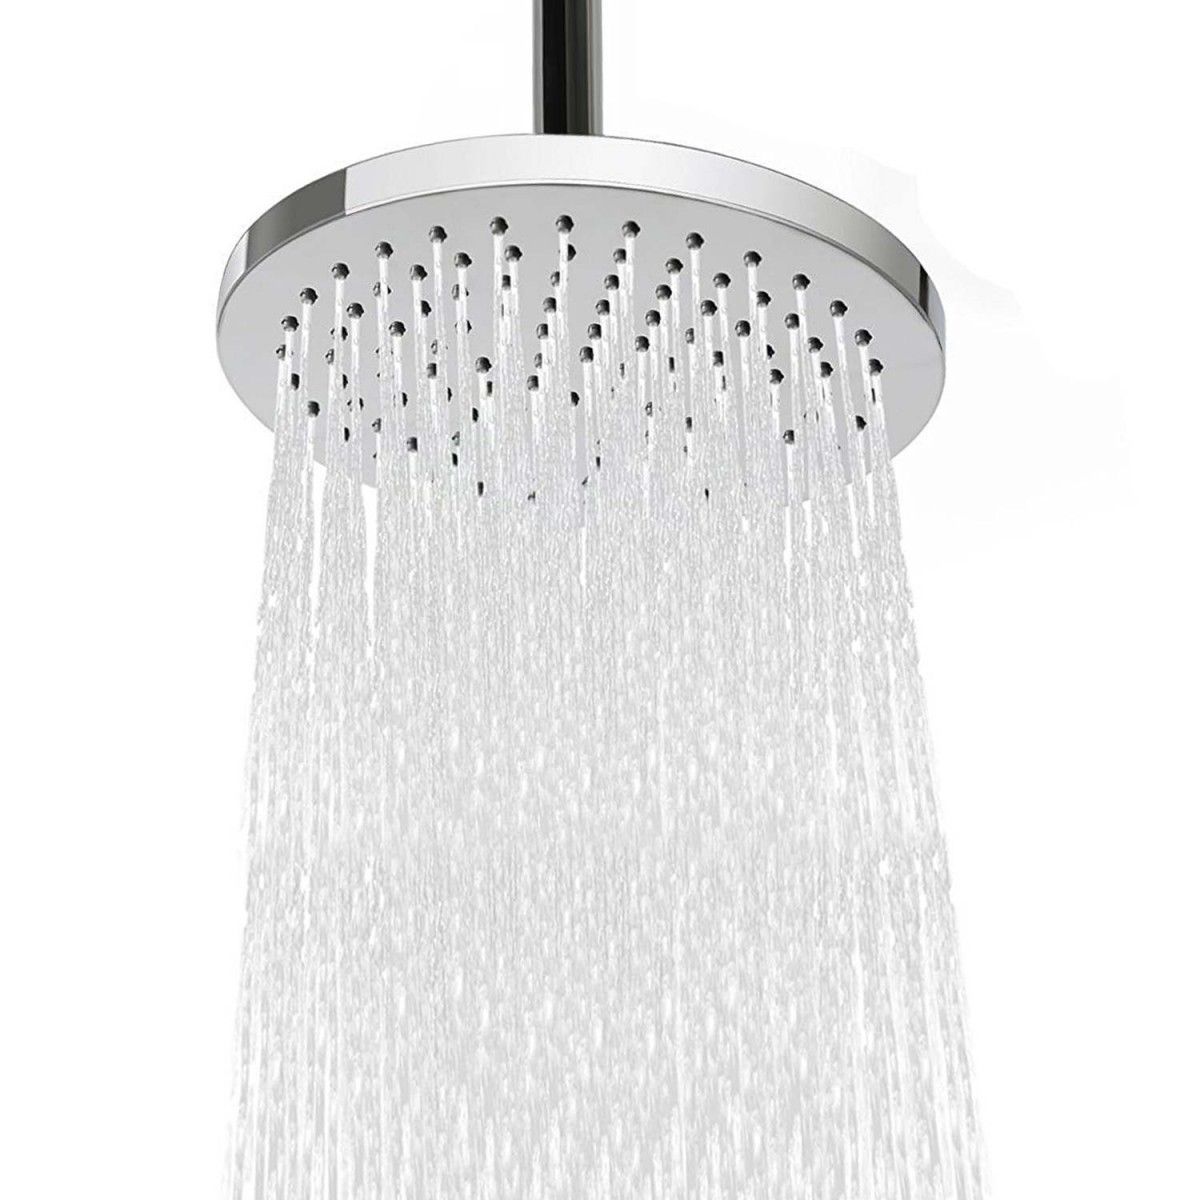 Aquaplumb Shower Sensations 8 Round Rain 90 Jet Shower Head With 13 5 Extension Arm Discontinued No Longer Available Shower Heads Curtains With Rings Shower Faucets